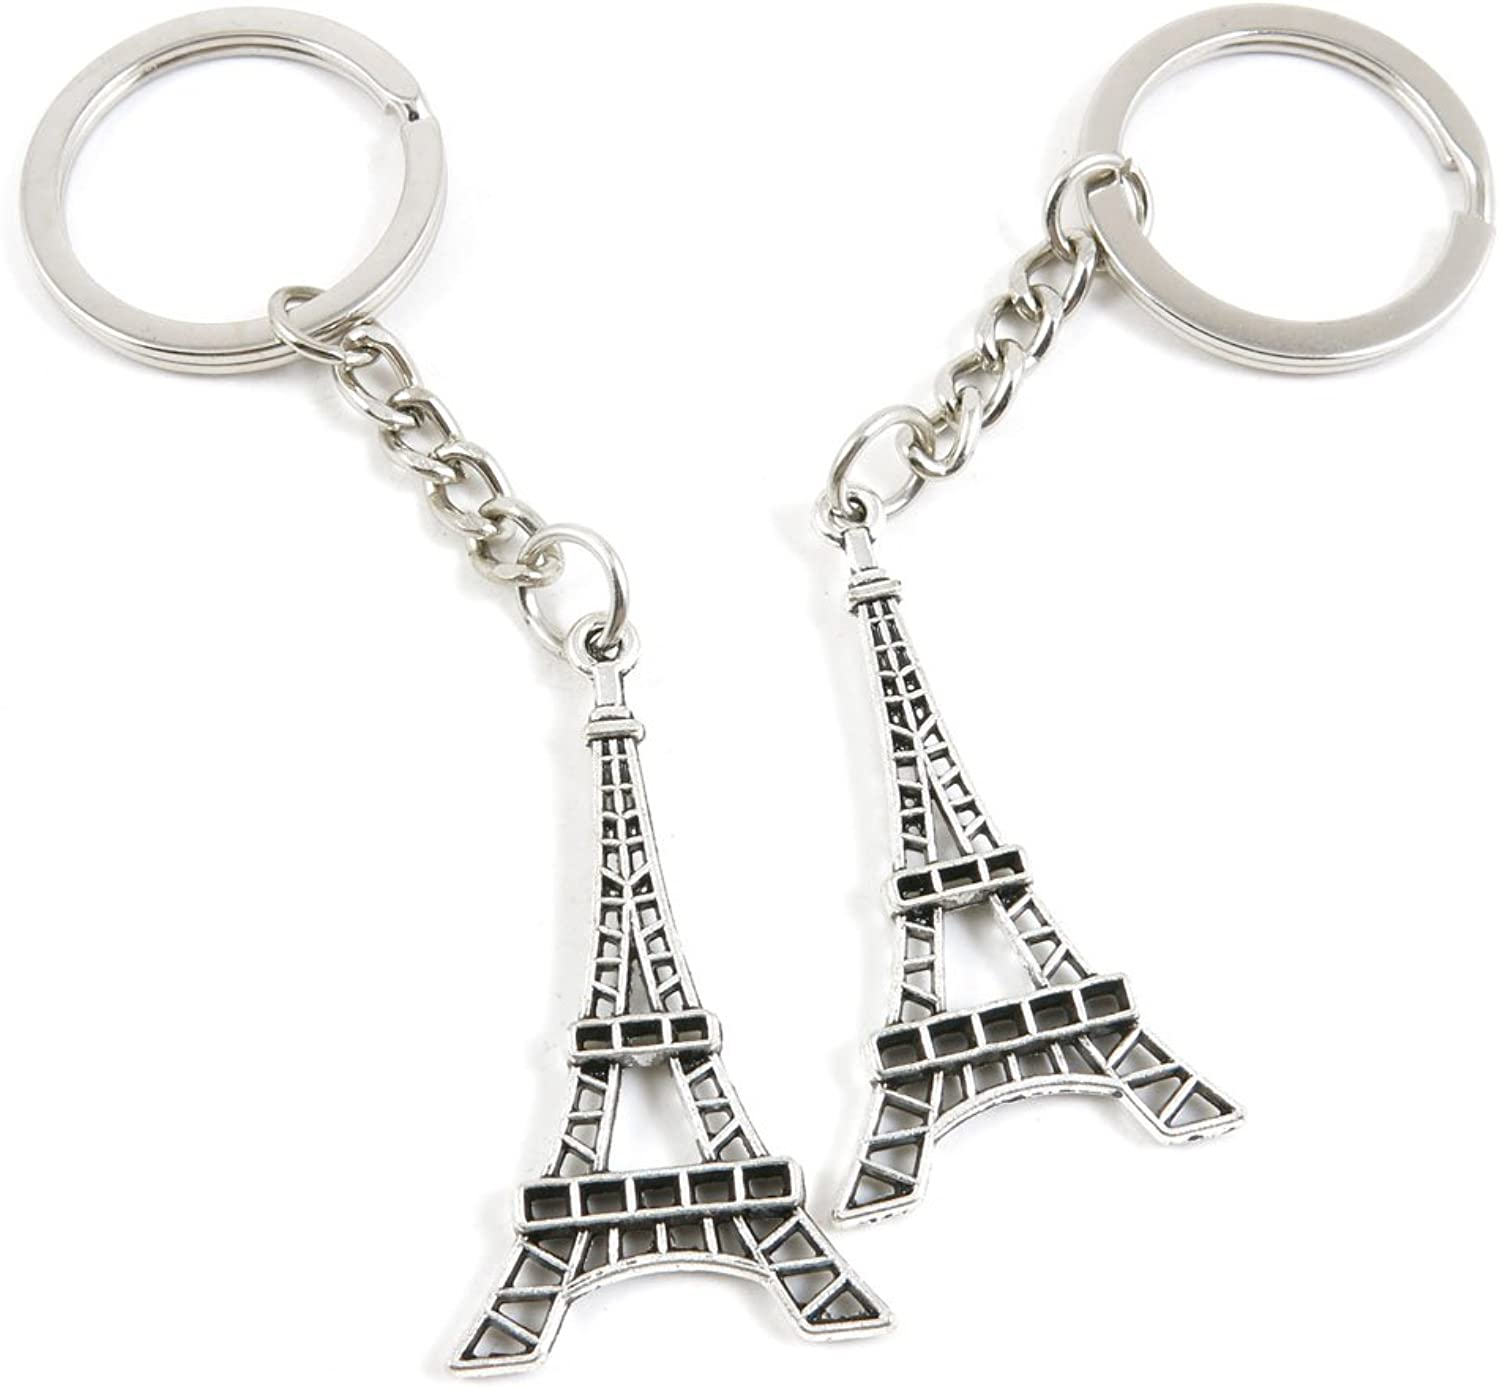 100 Pieces Keychain Keyring Door Car Key Chain Ring Tag Charms Bulk Supply Jewelry Making Clasp Findings E3TC2P Paris Eiffel Tower